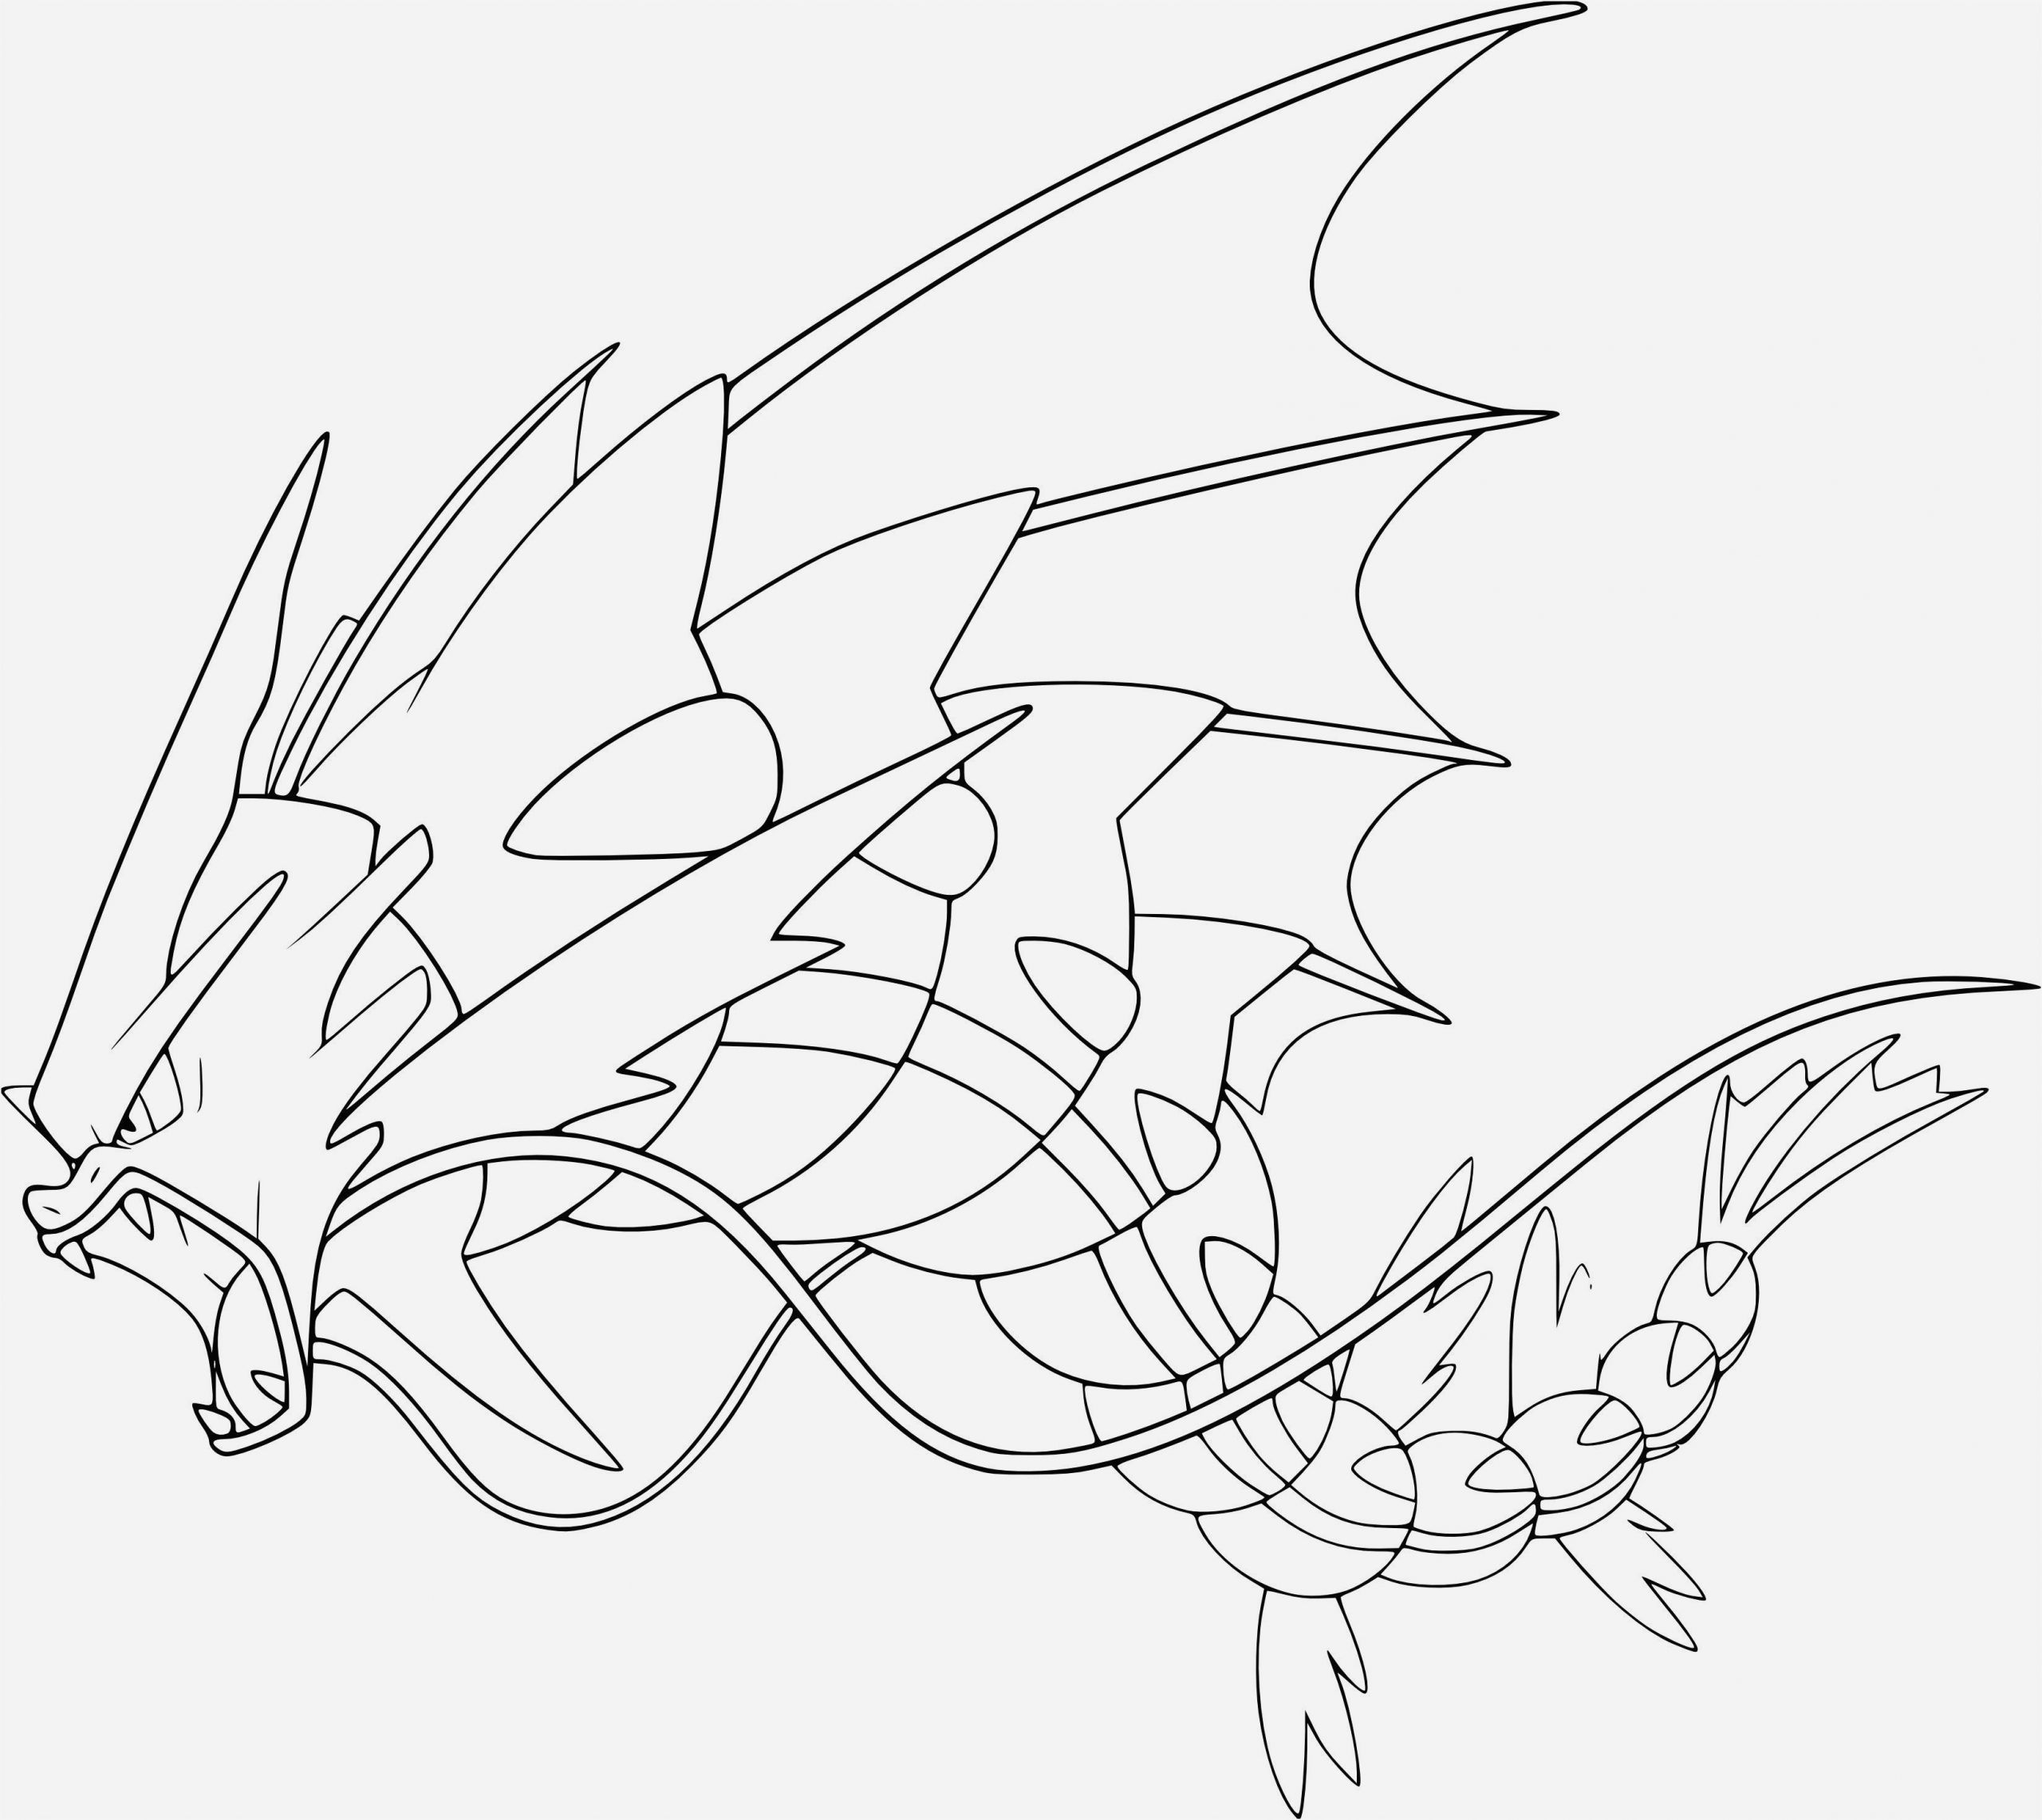 Coloriage Pokemon Evoli Inspirational Cool Coloriage Pokemon Gx with 42 Frais Coloriage Pokemon Of Coloriage Pokemon Evoli